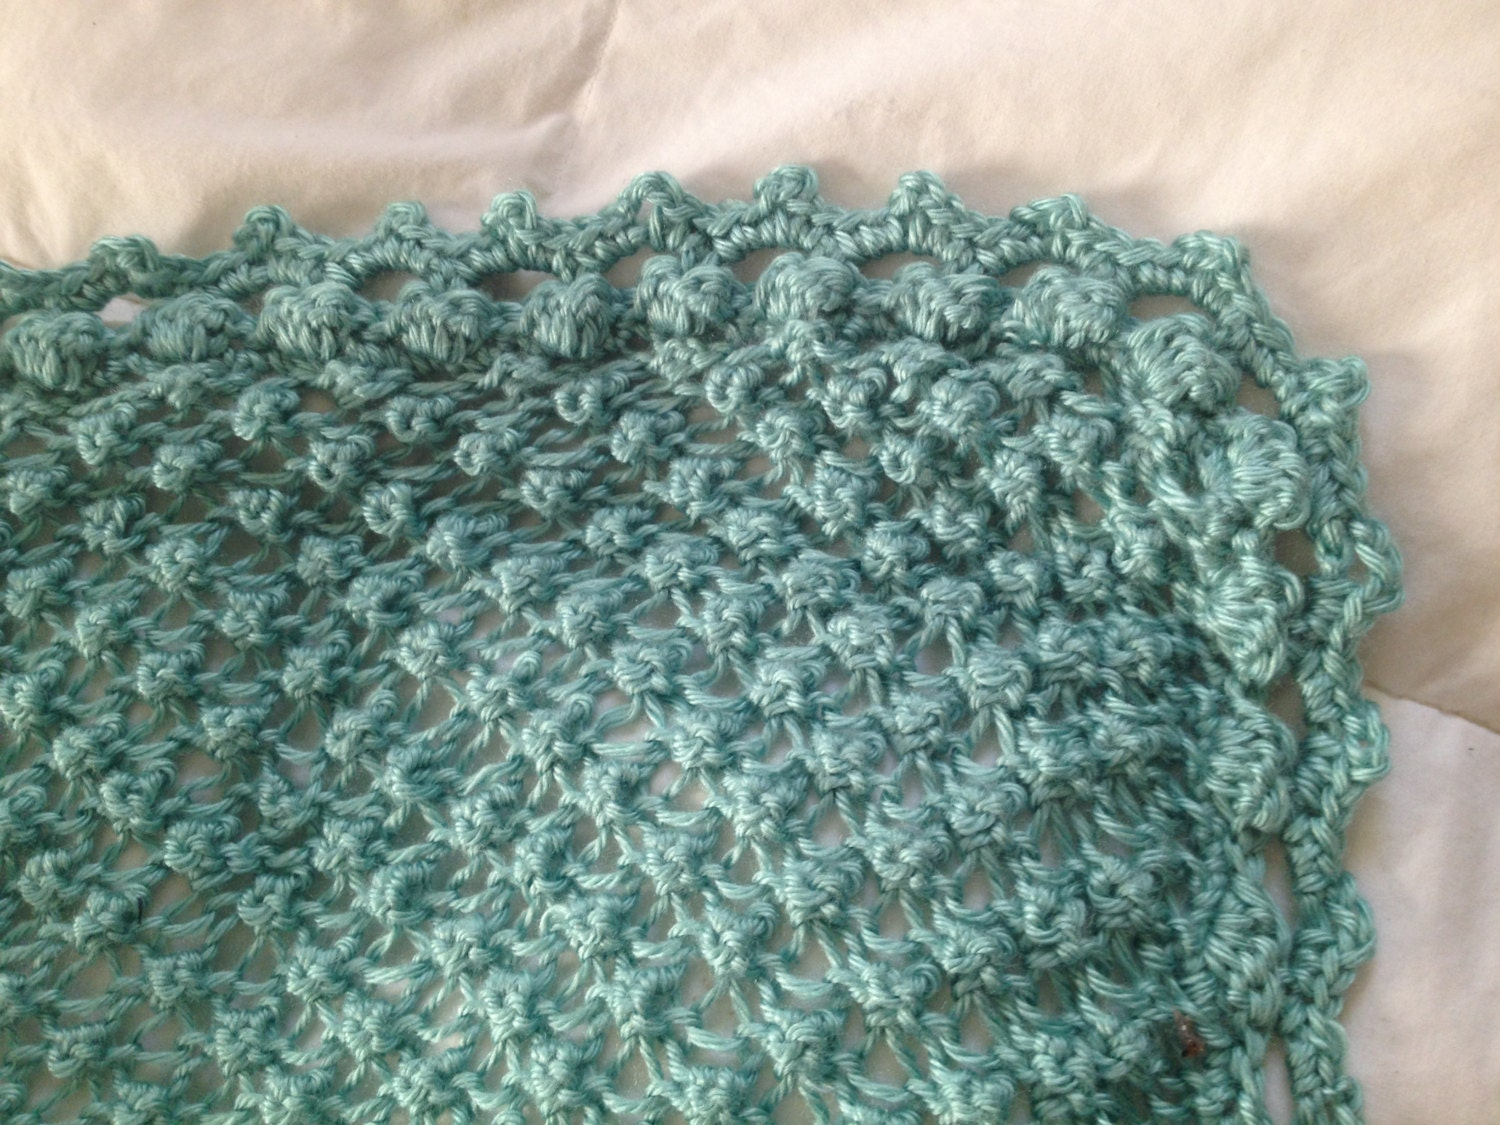 Baby Cot Blanket Knitting Pattern : Hand Knit Baby Blanket in Popcorn stitch pattern with